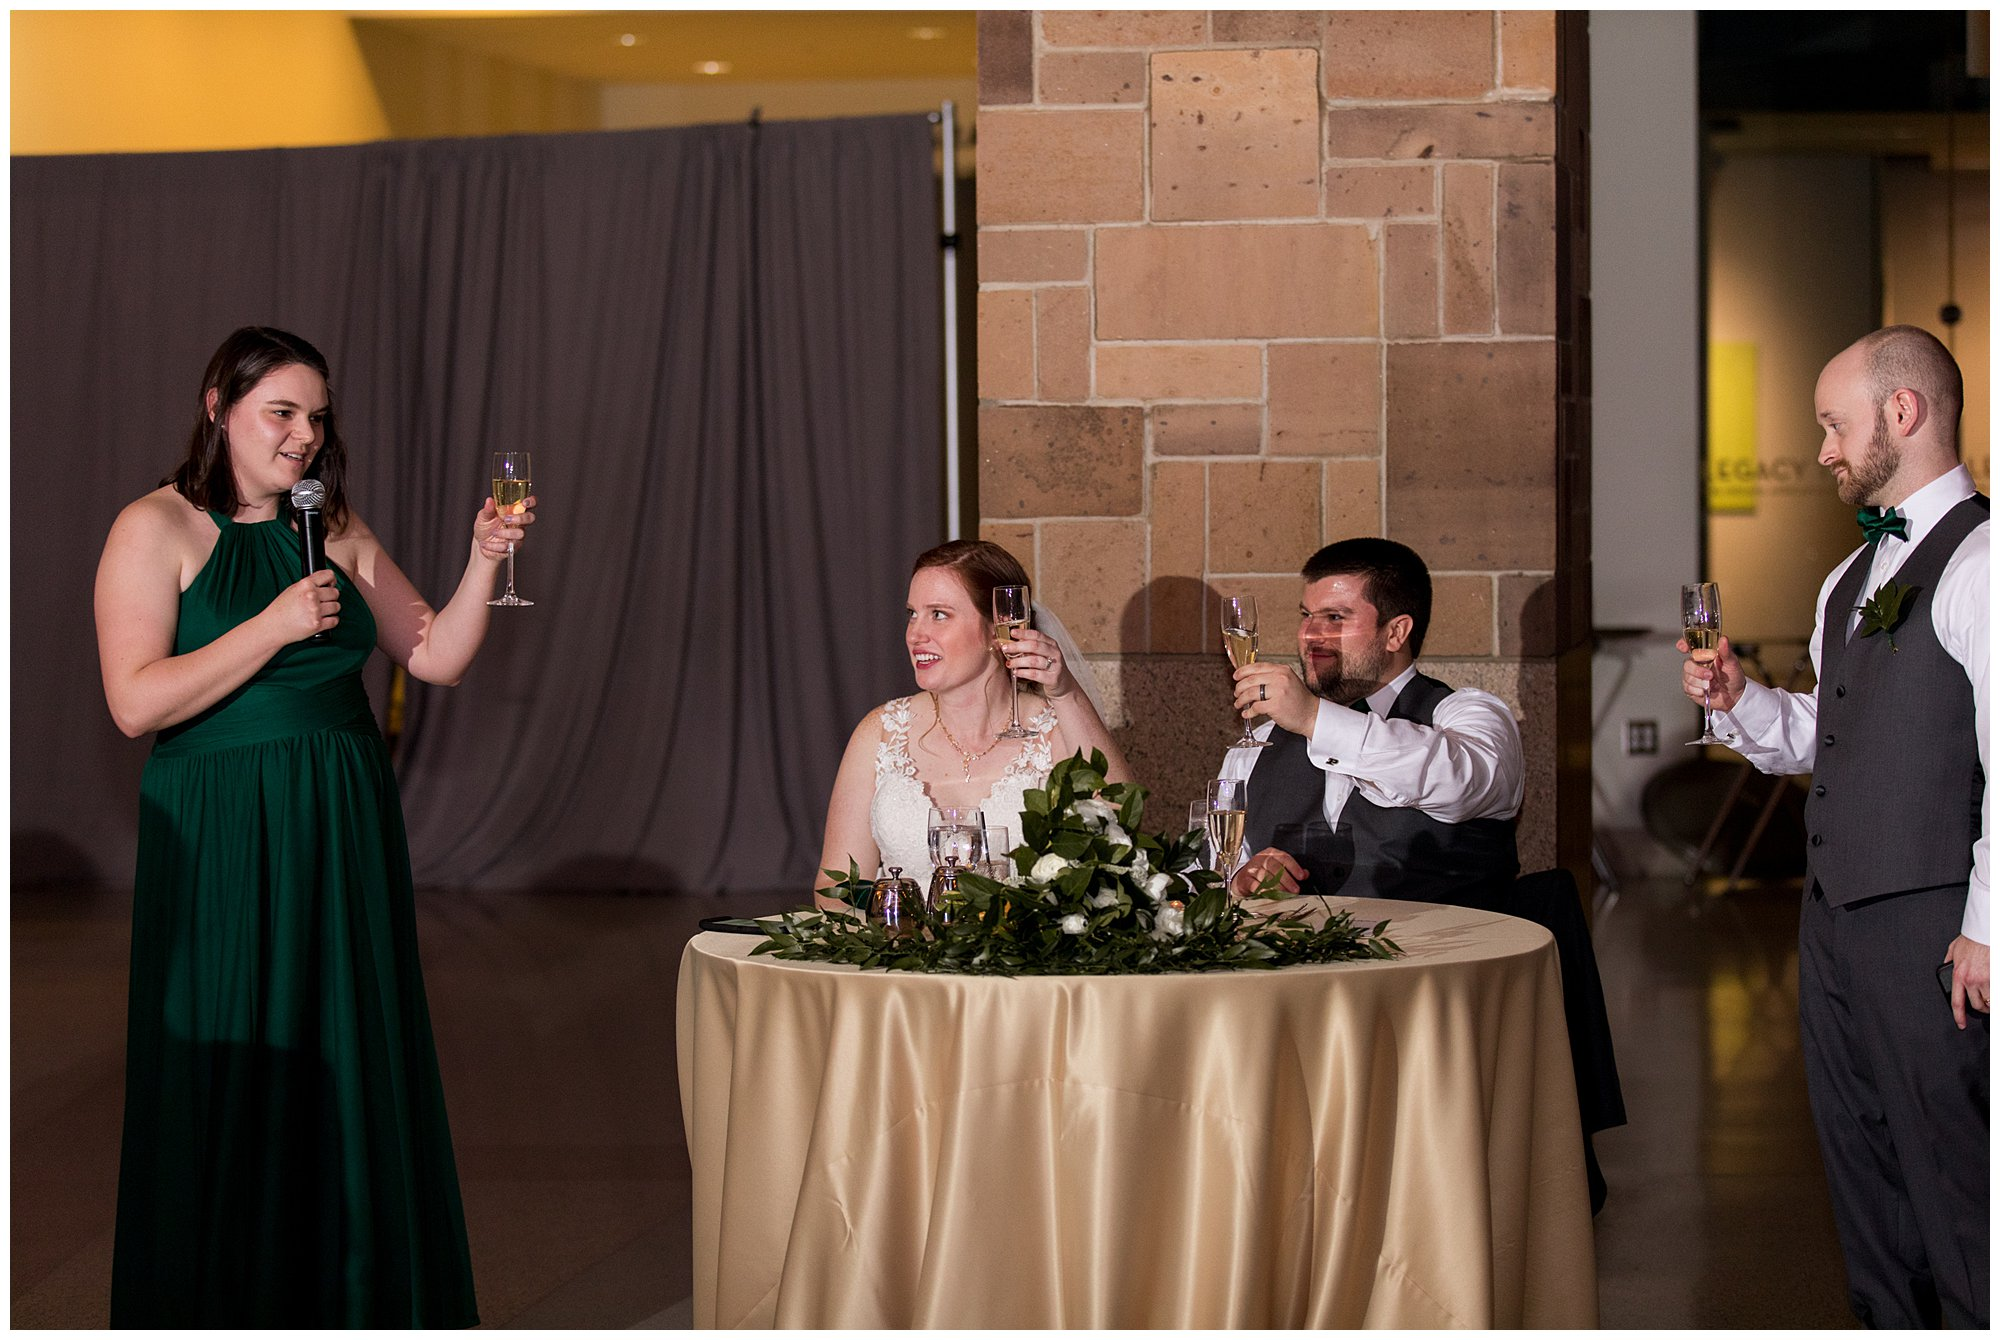 maid of honor gives toast in honor of bride and groom at Indiana State Museum wedding reception